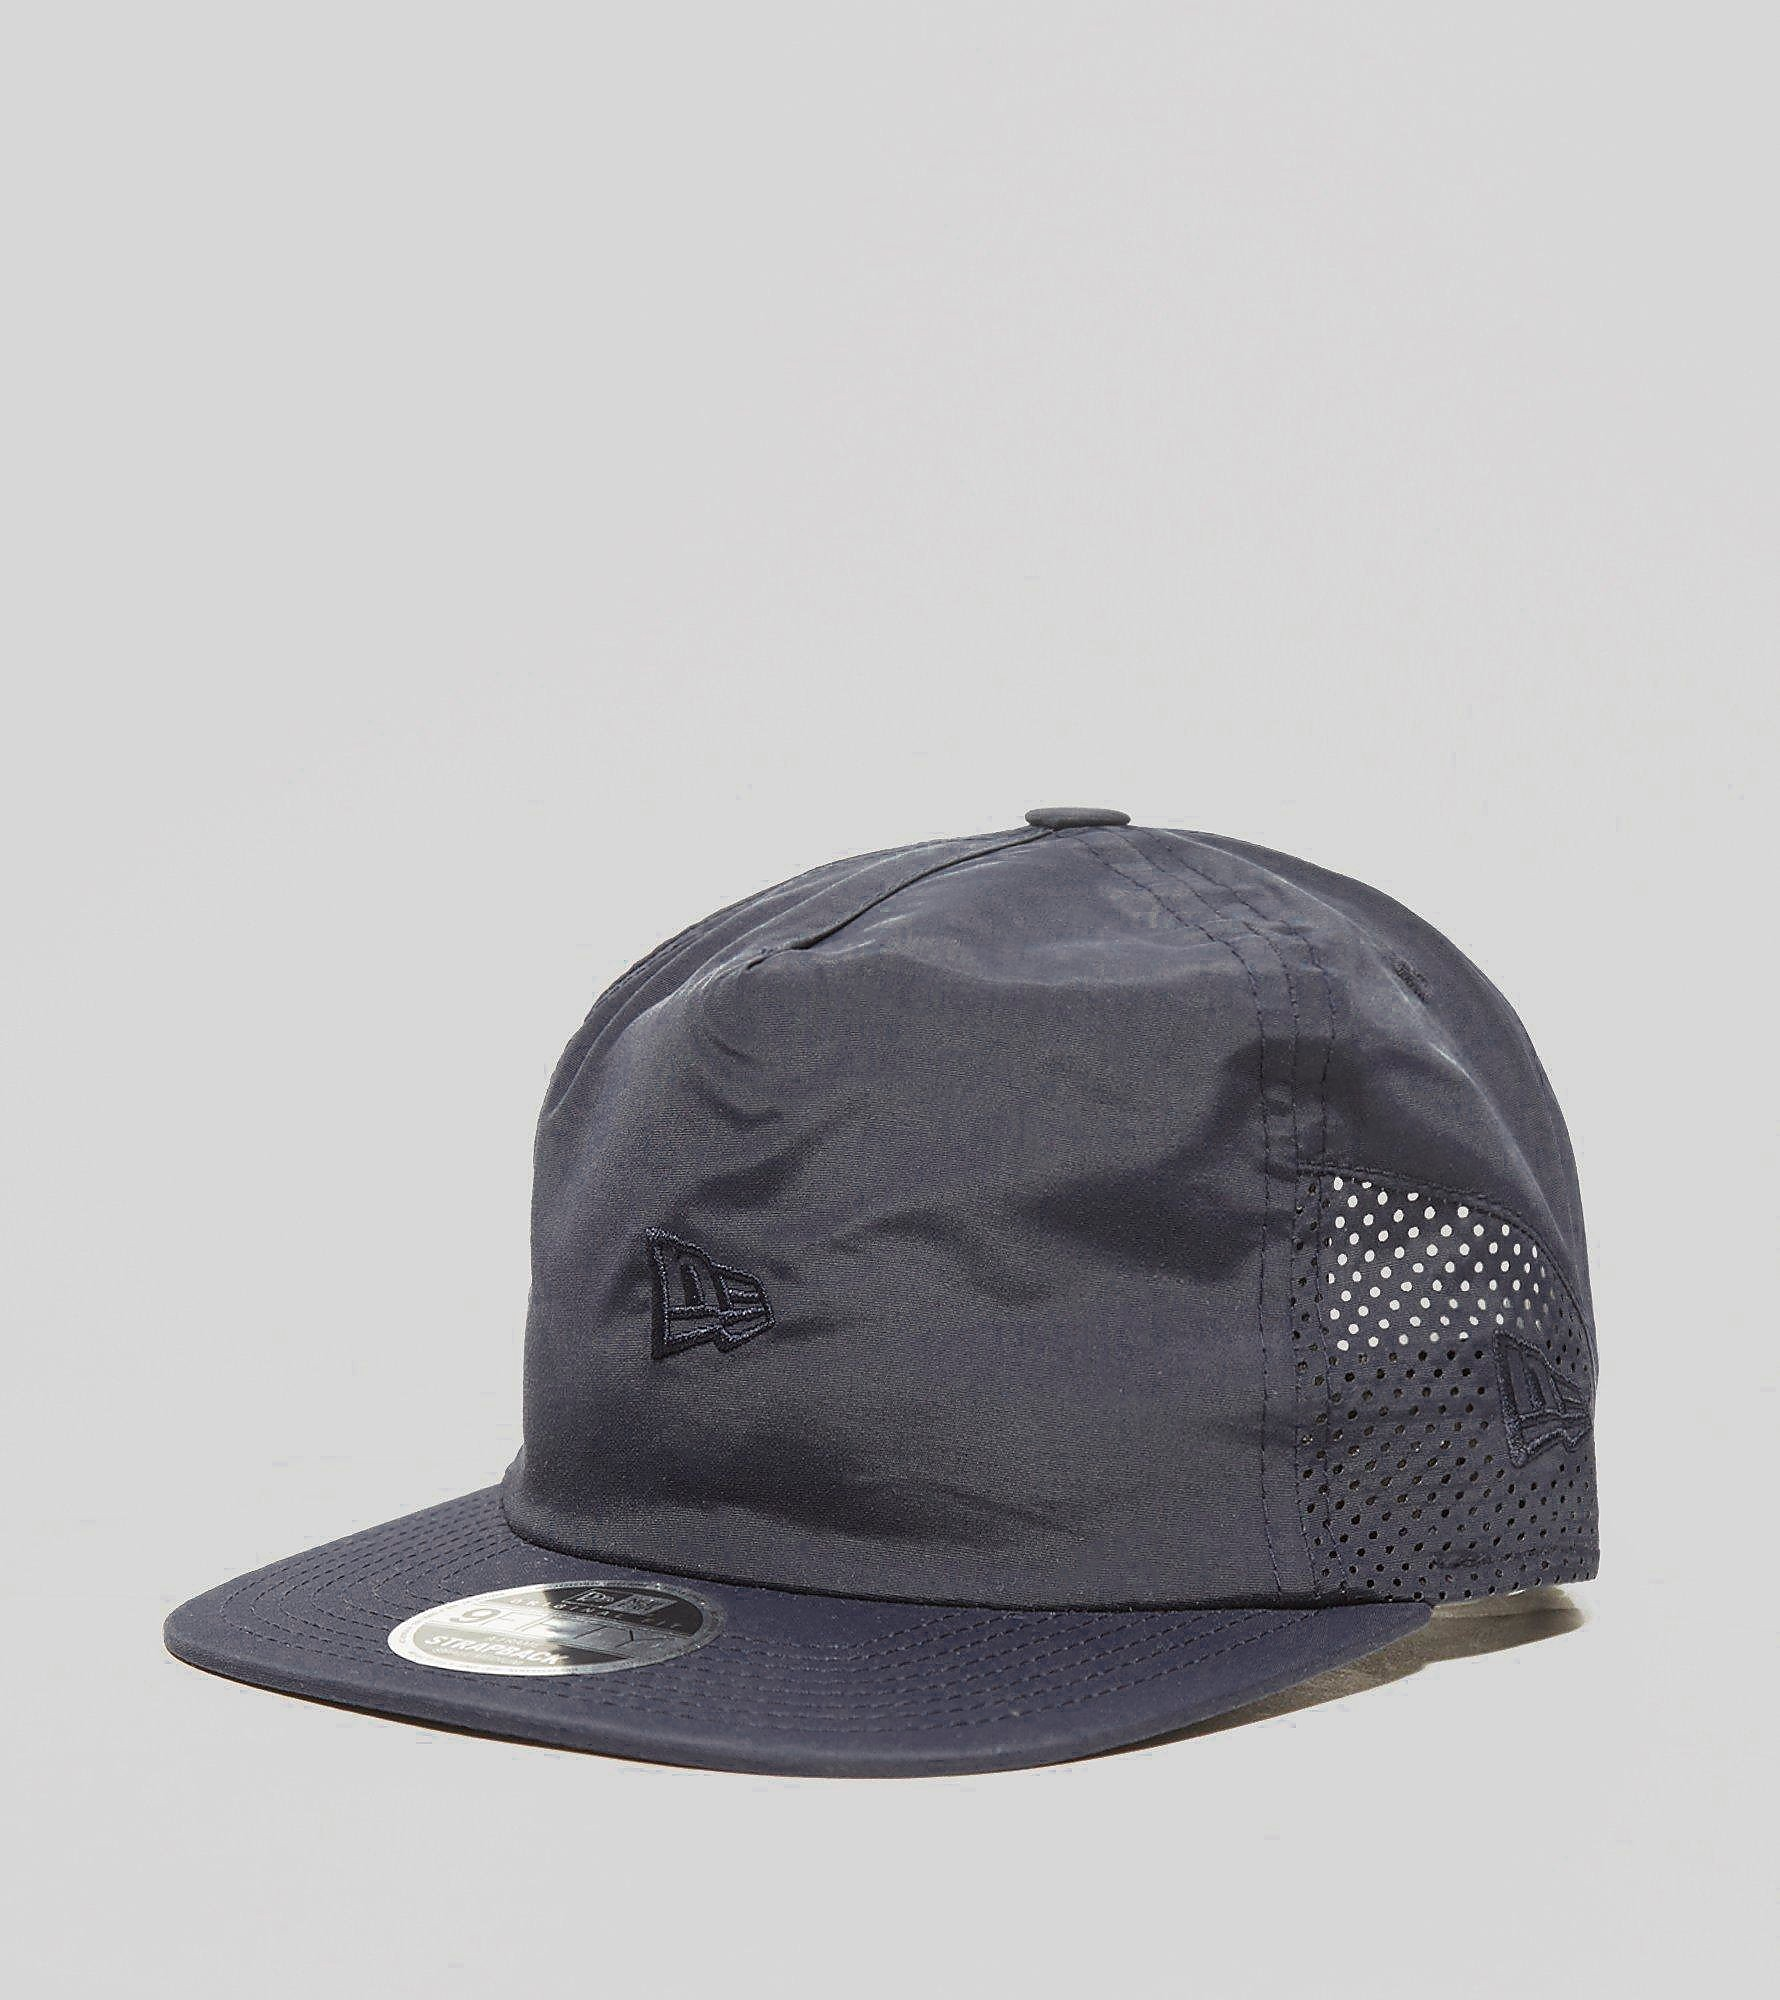 New Era 9FIFTY Toggle Cap - size? Exclusive